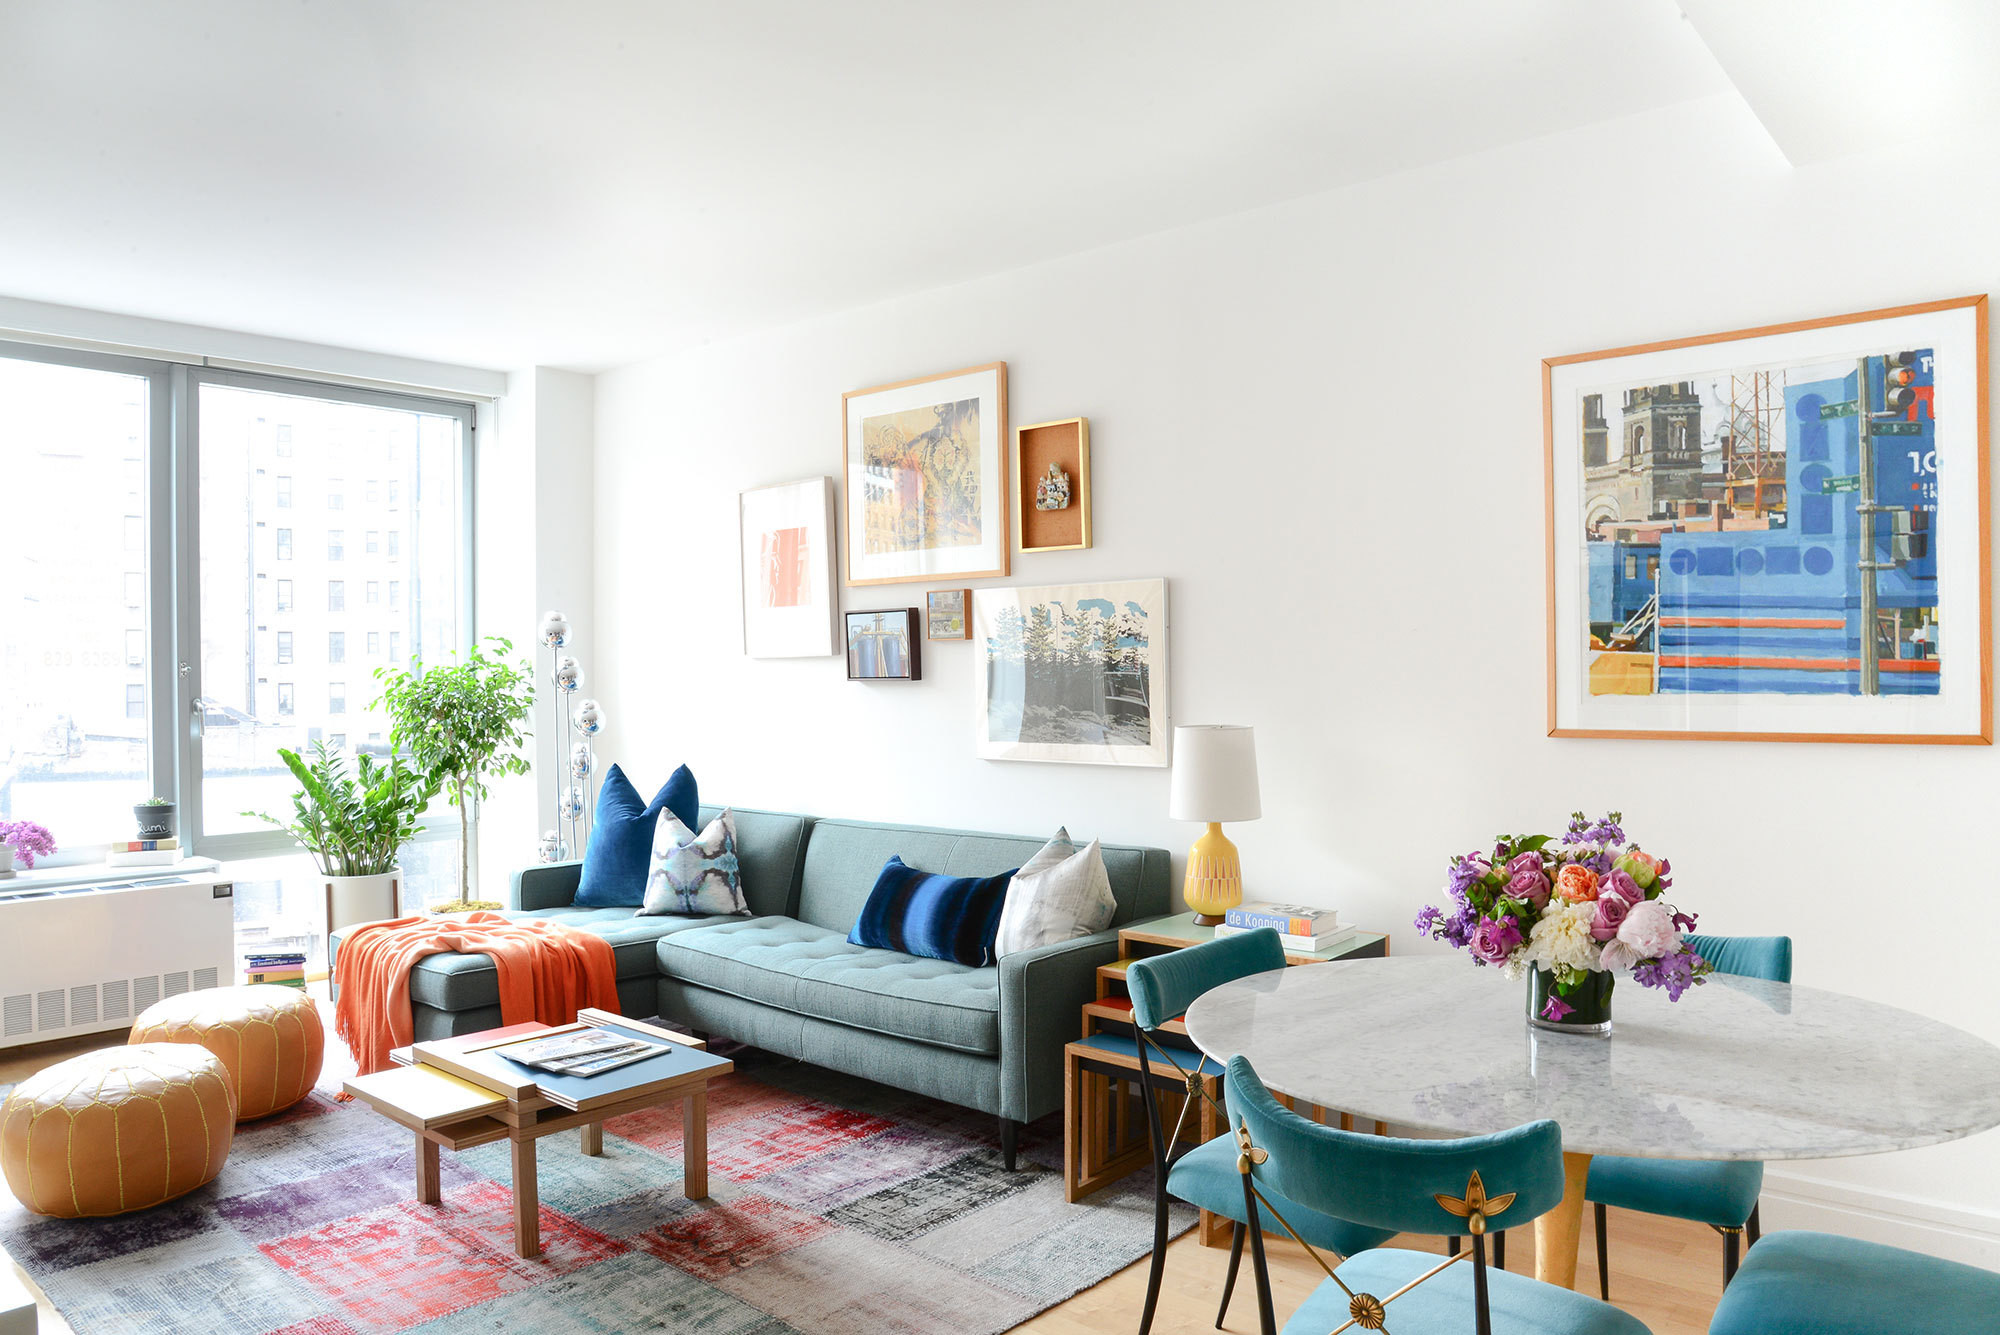 Homepolish Designer Matthew Cane Incorporated Color And Texture In A Cheerful Second Home New York